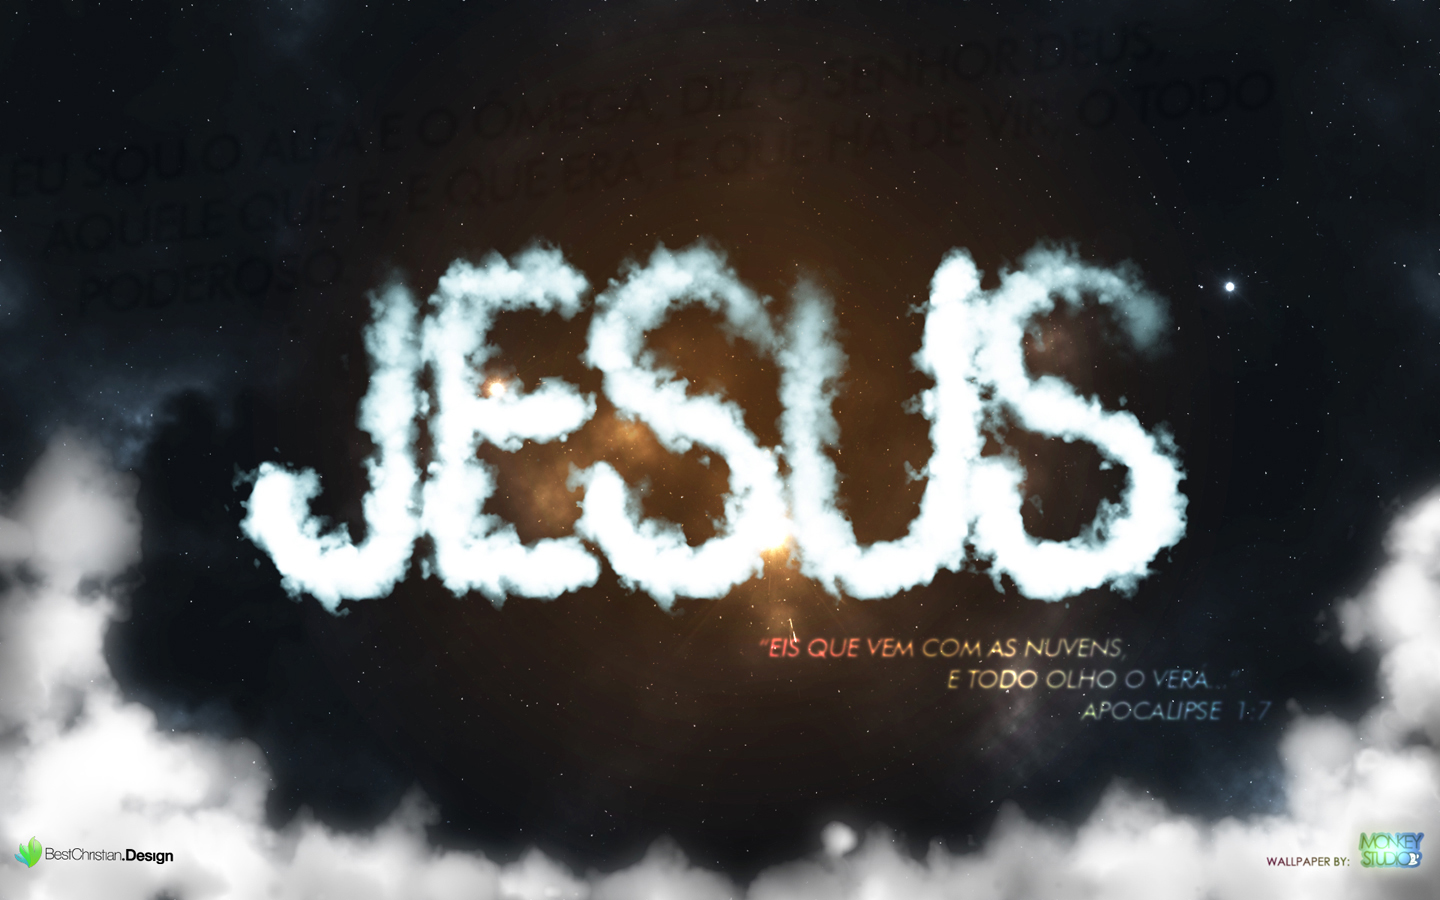 christ widescreen wallpapers 21 jesus christ widescreen wallpapers 22 1440x900